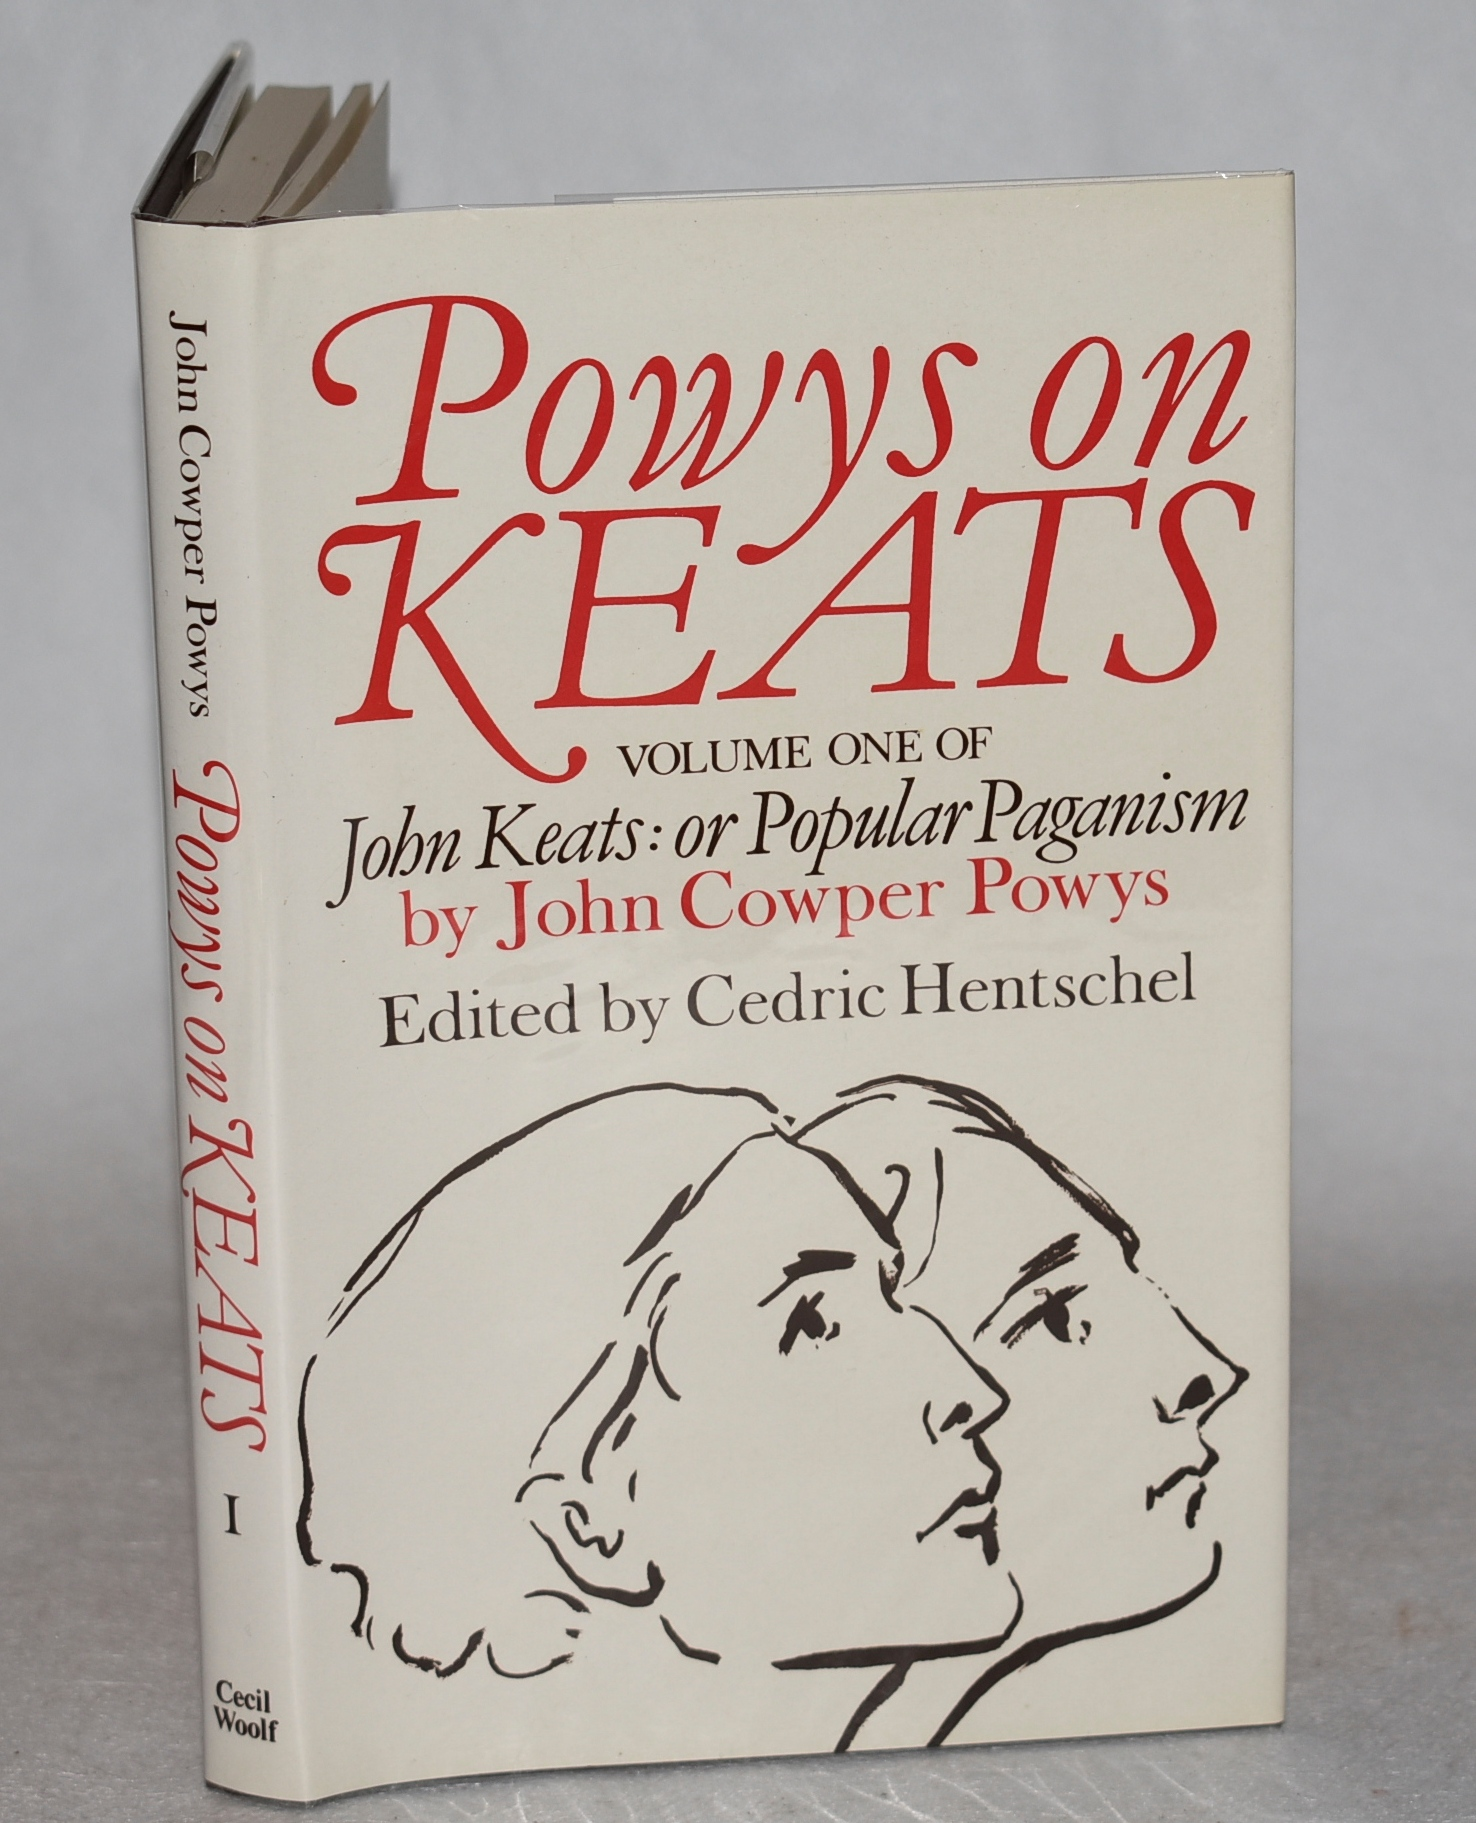 Image for Powys on Keats. John Keats: or Popular Paganism. Volume One. Edited by Cedric Hentschel.